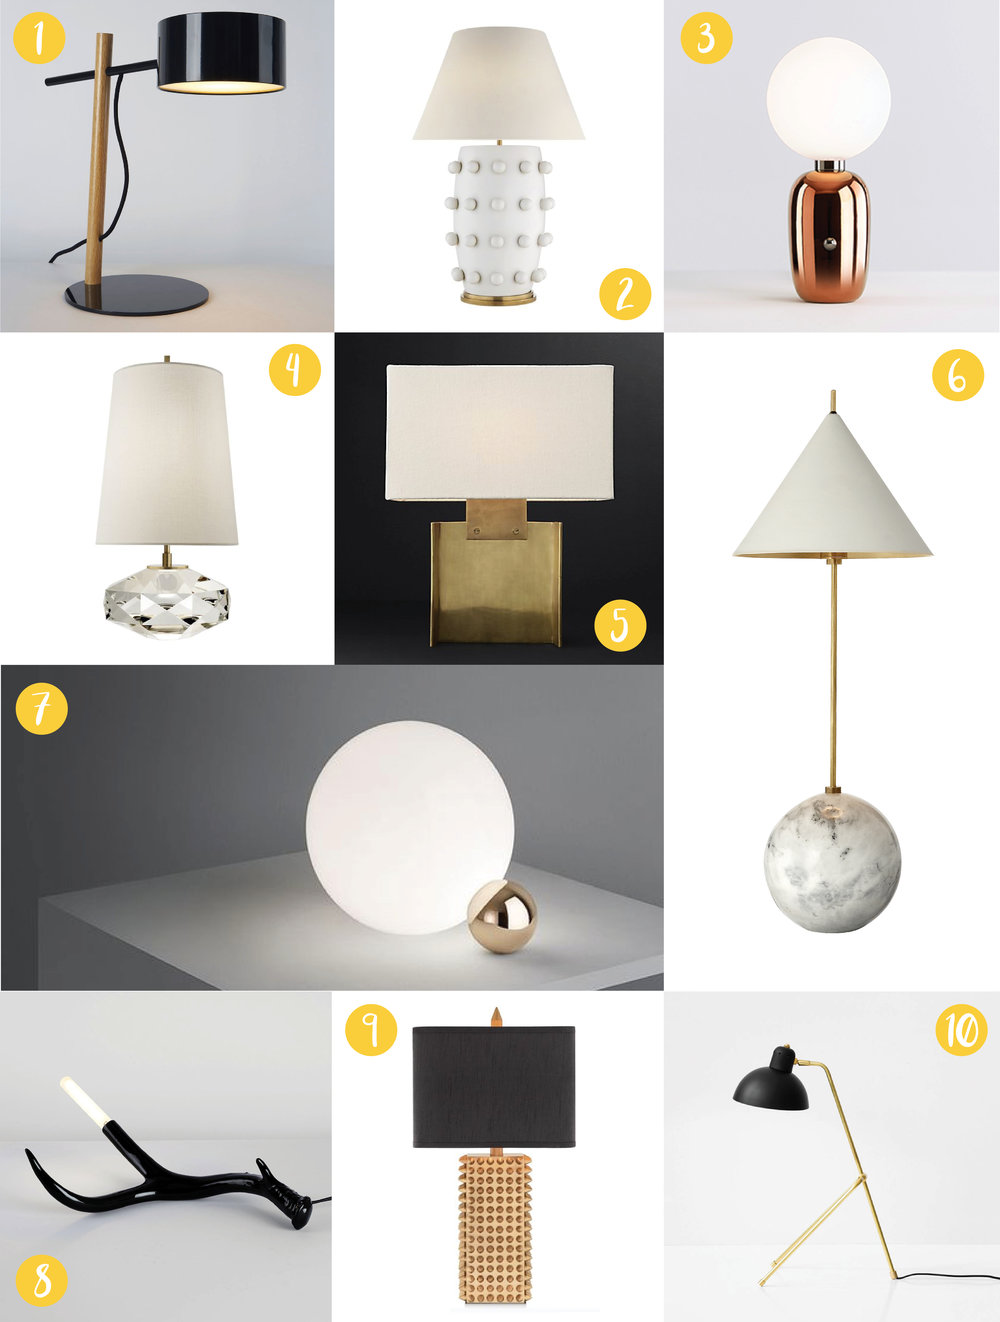 Top 10 Table Lamps, Nyla Free Designs Inc., Calgary Interior Designer